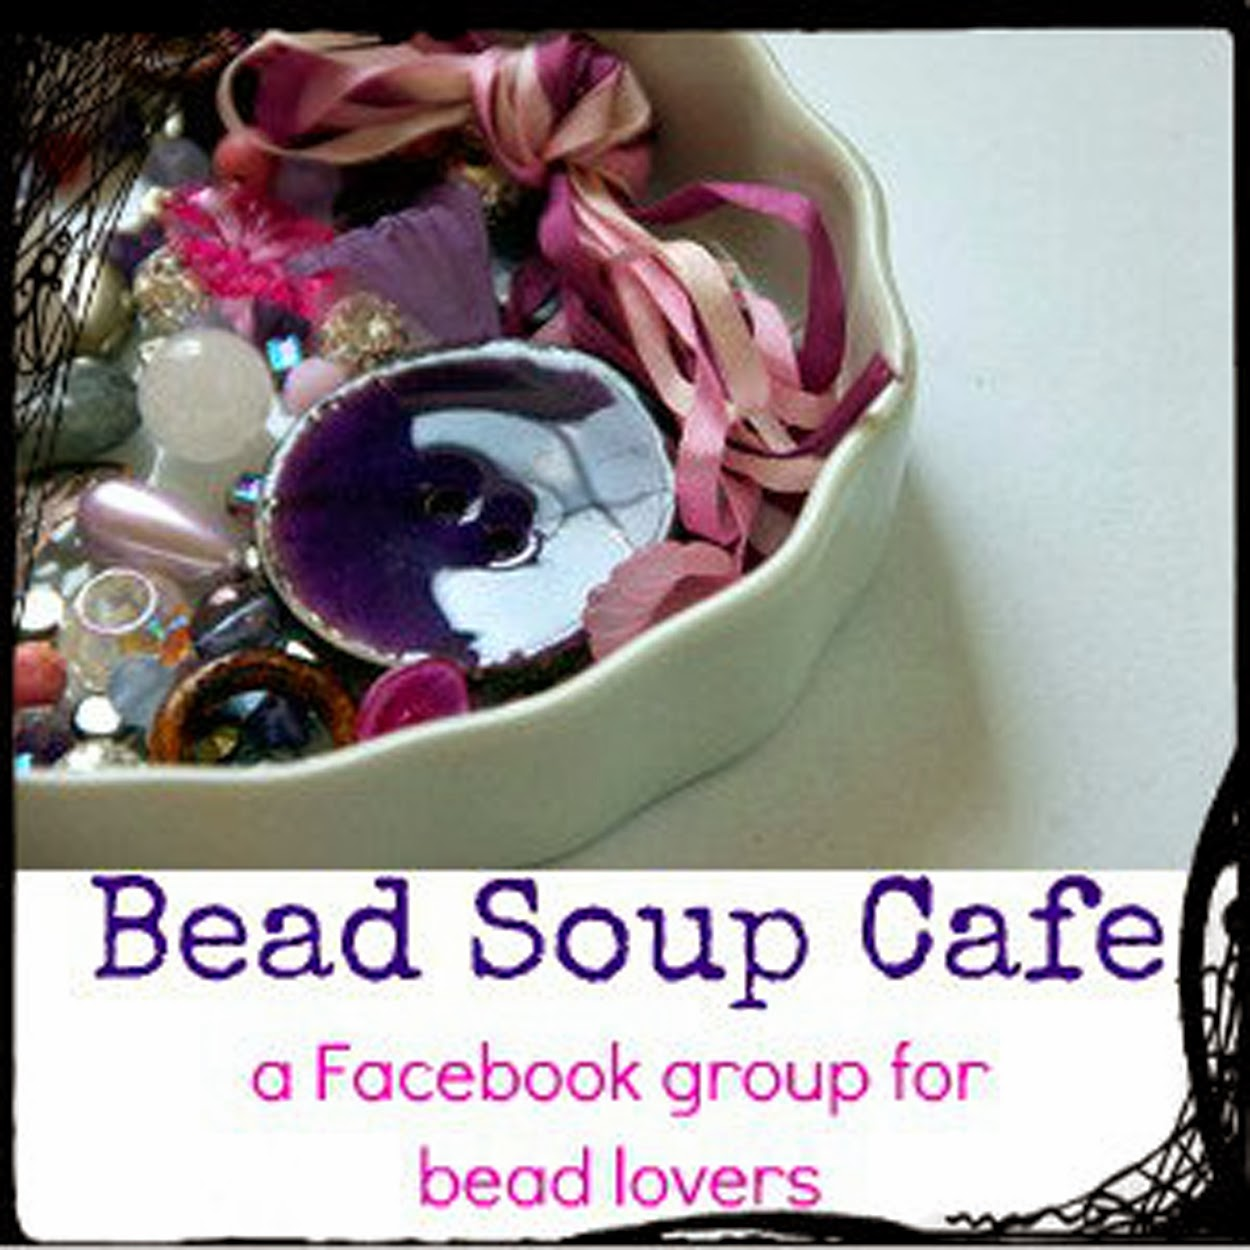 Member of Bead Soup Cafe